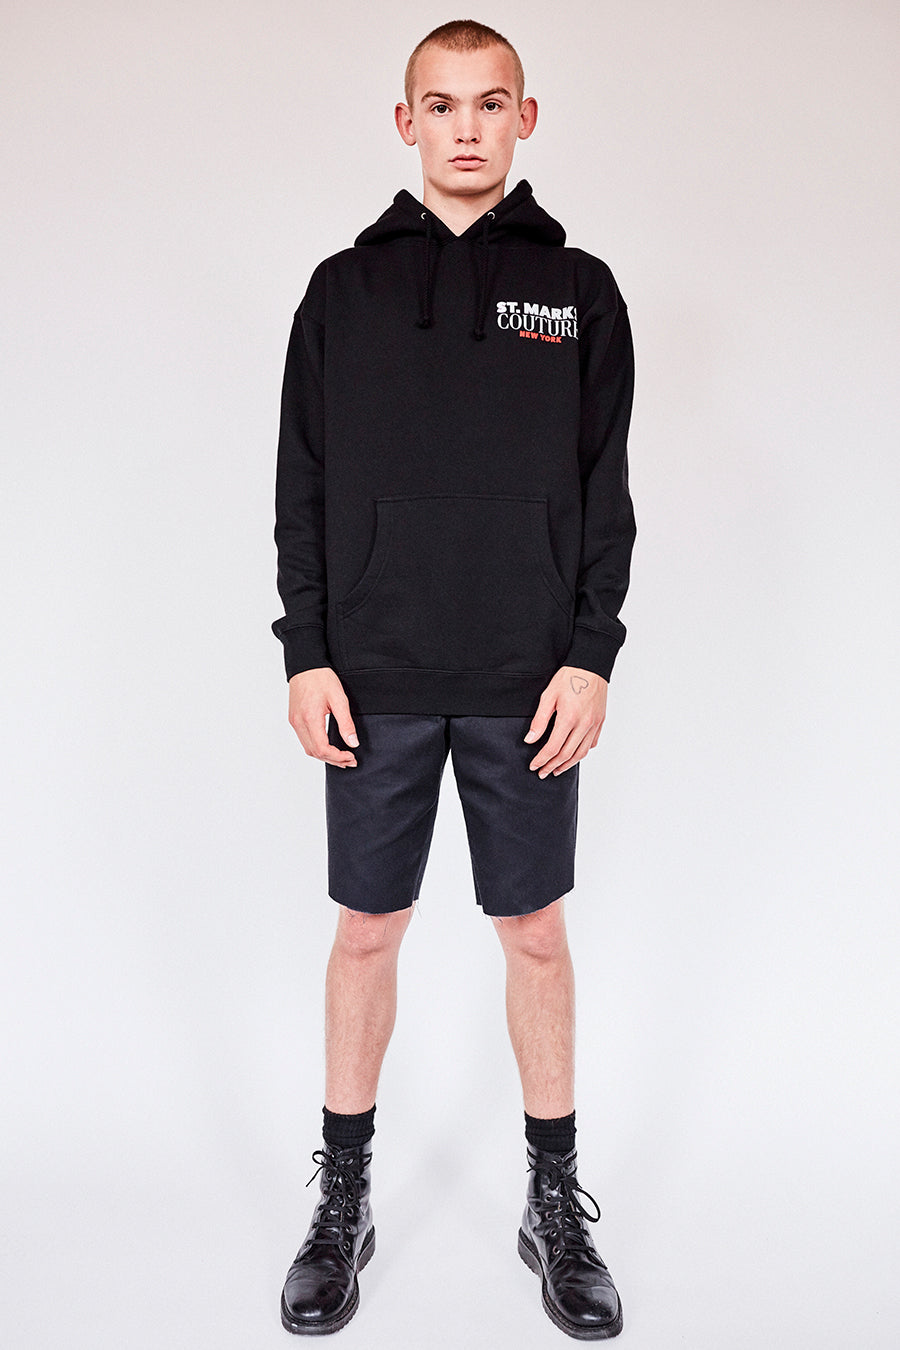 The St Marks Guys Hoodie- Black